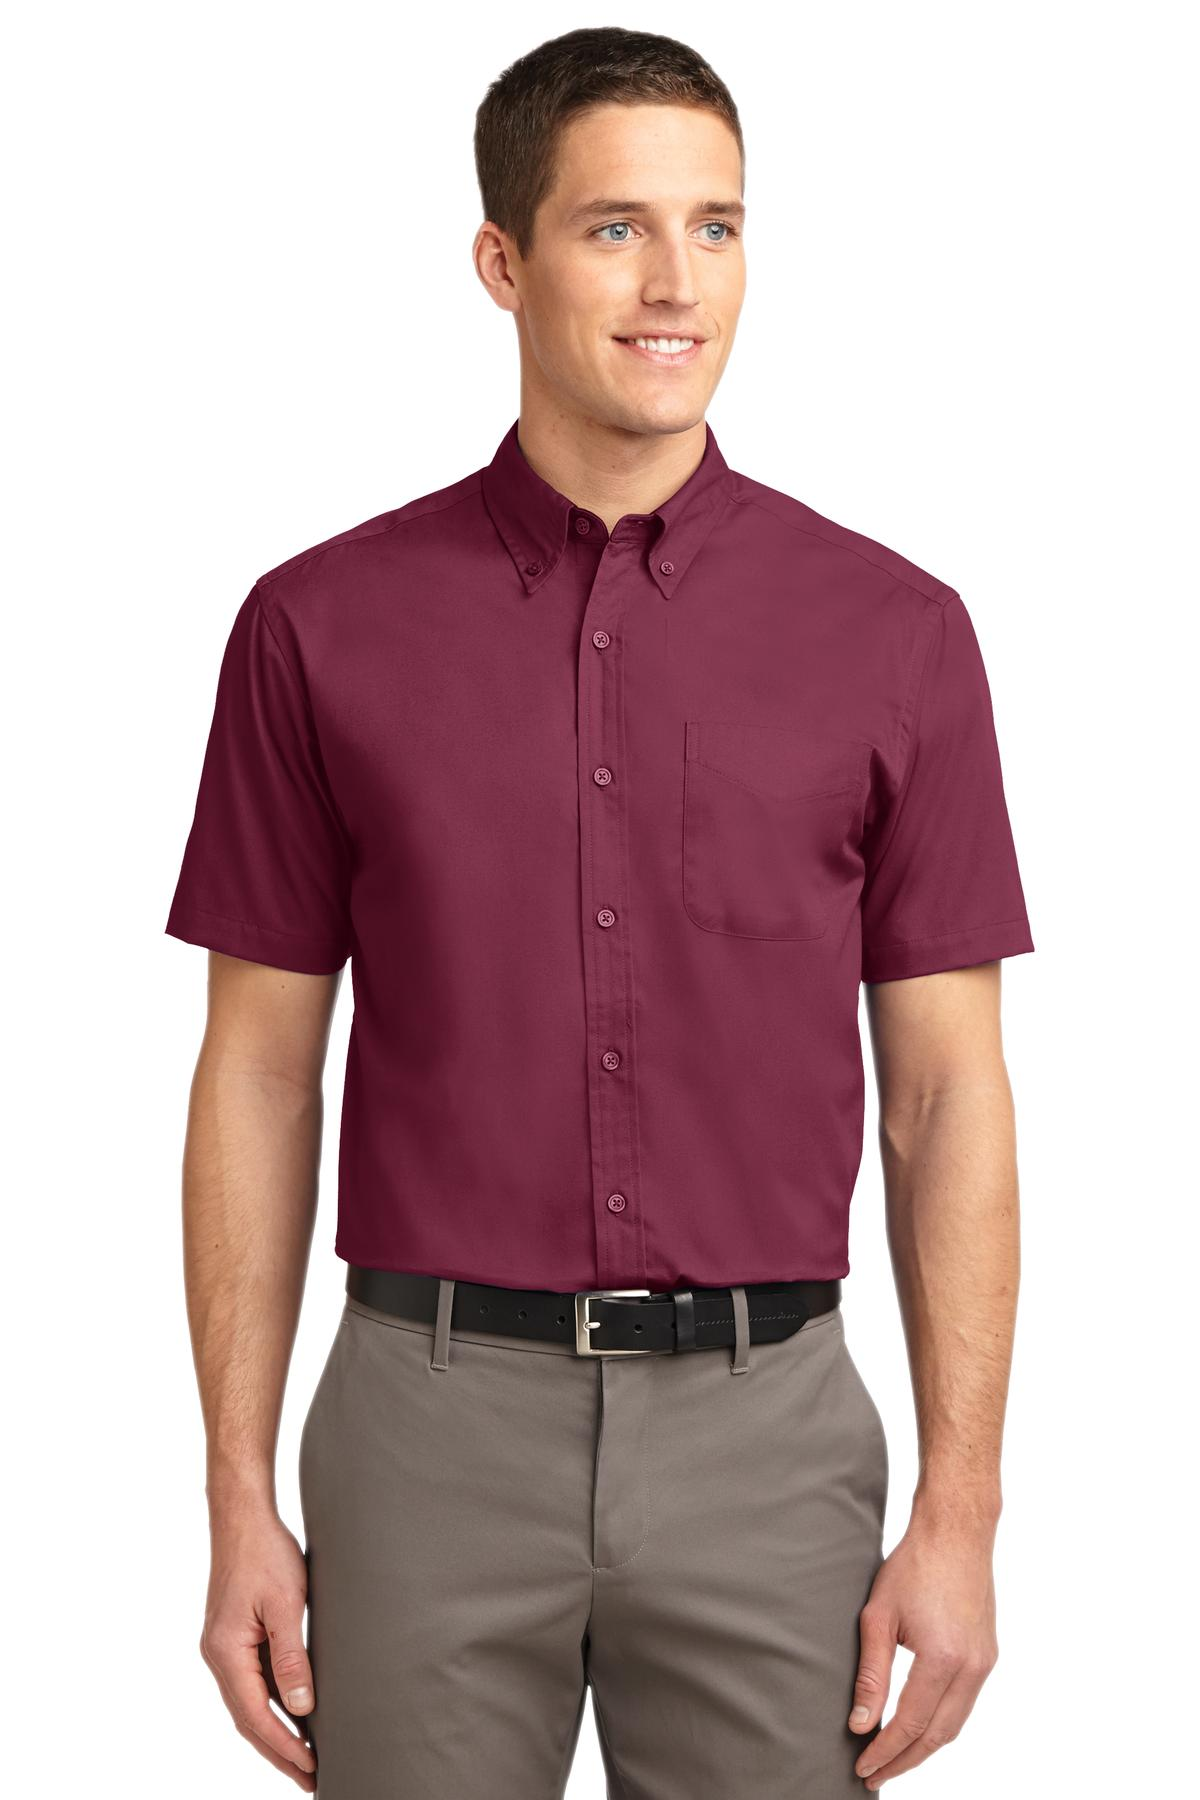 Port Authority ®  Short Sleeve Easy Care Shirt.  S508 - Burgundy/ Light Stone